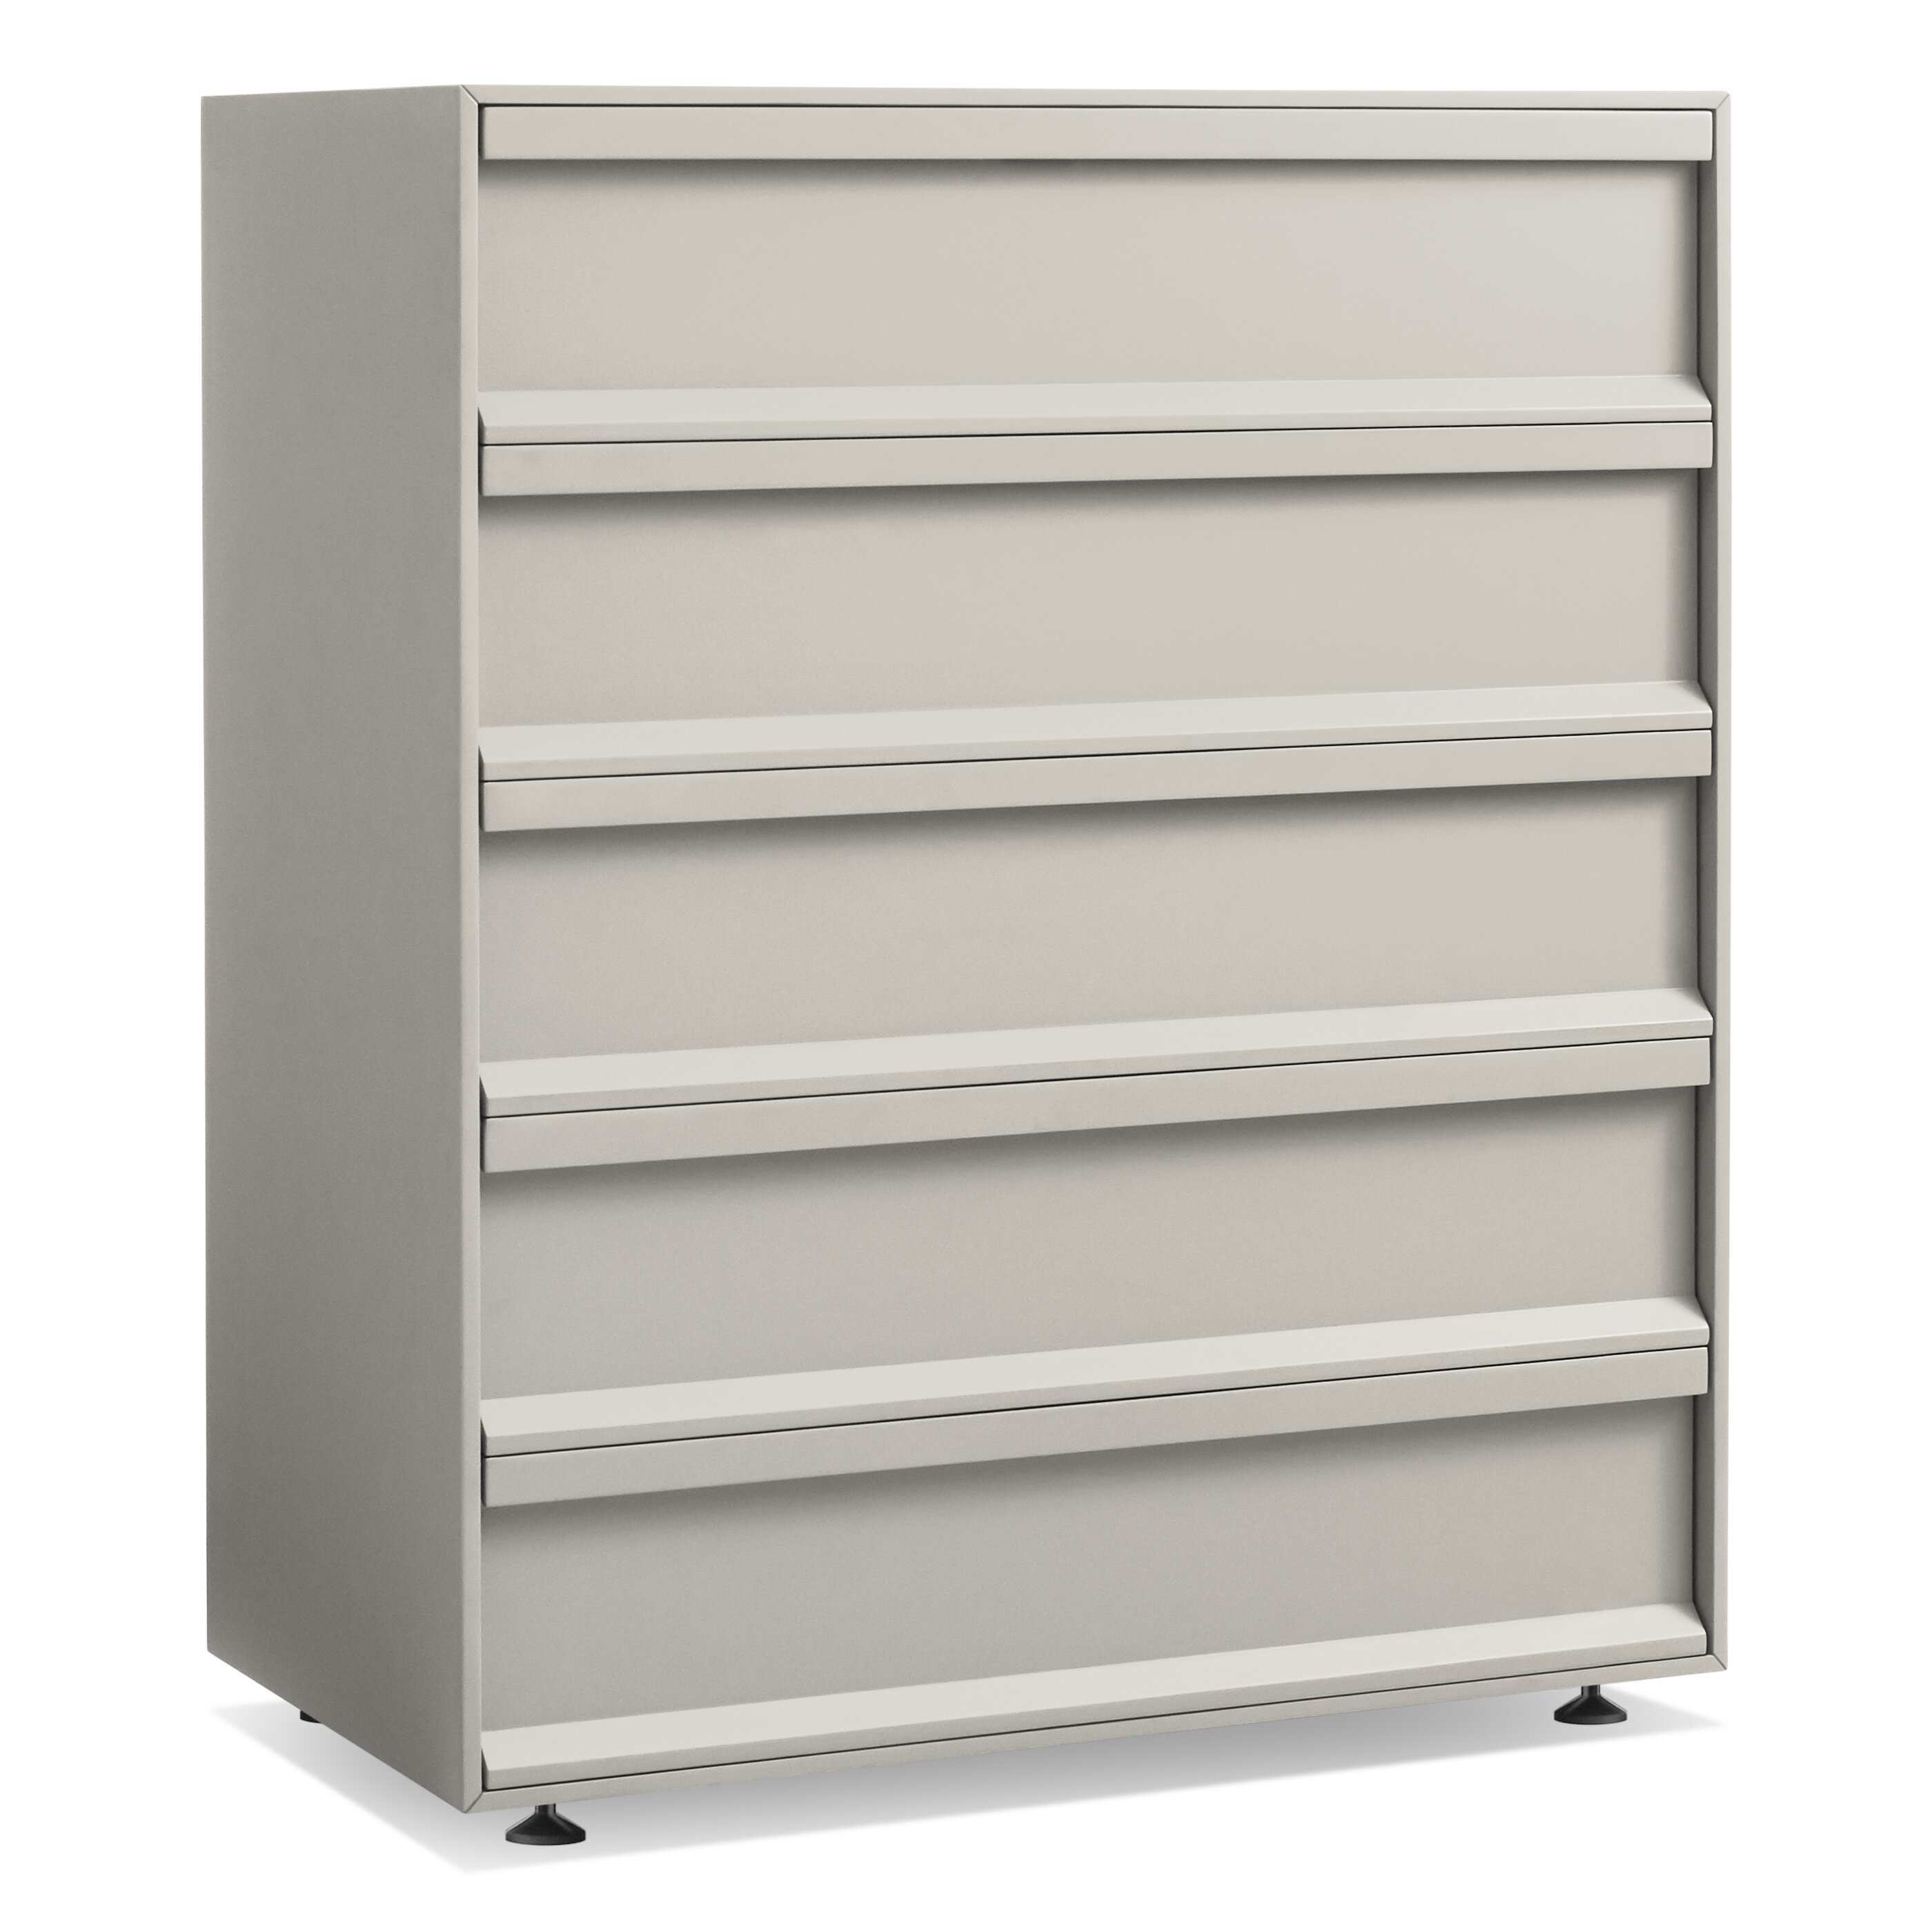 Blu Dot Dressers Chests You Ll Love In 2021 Wayfair